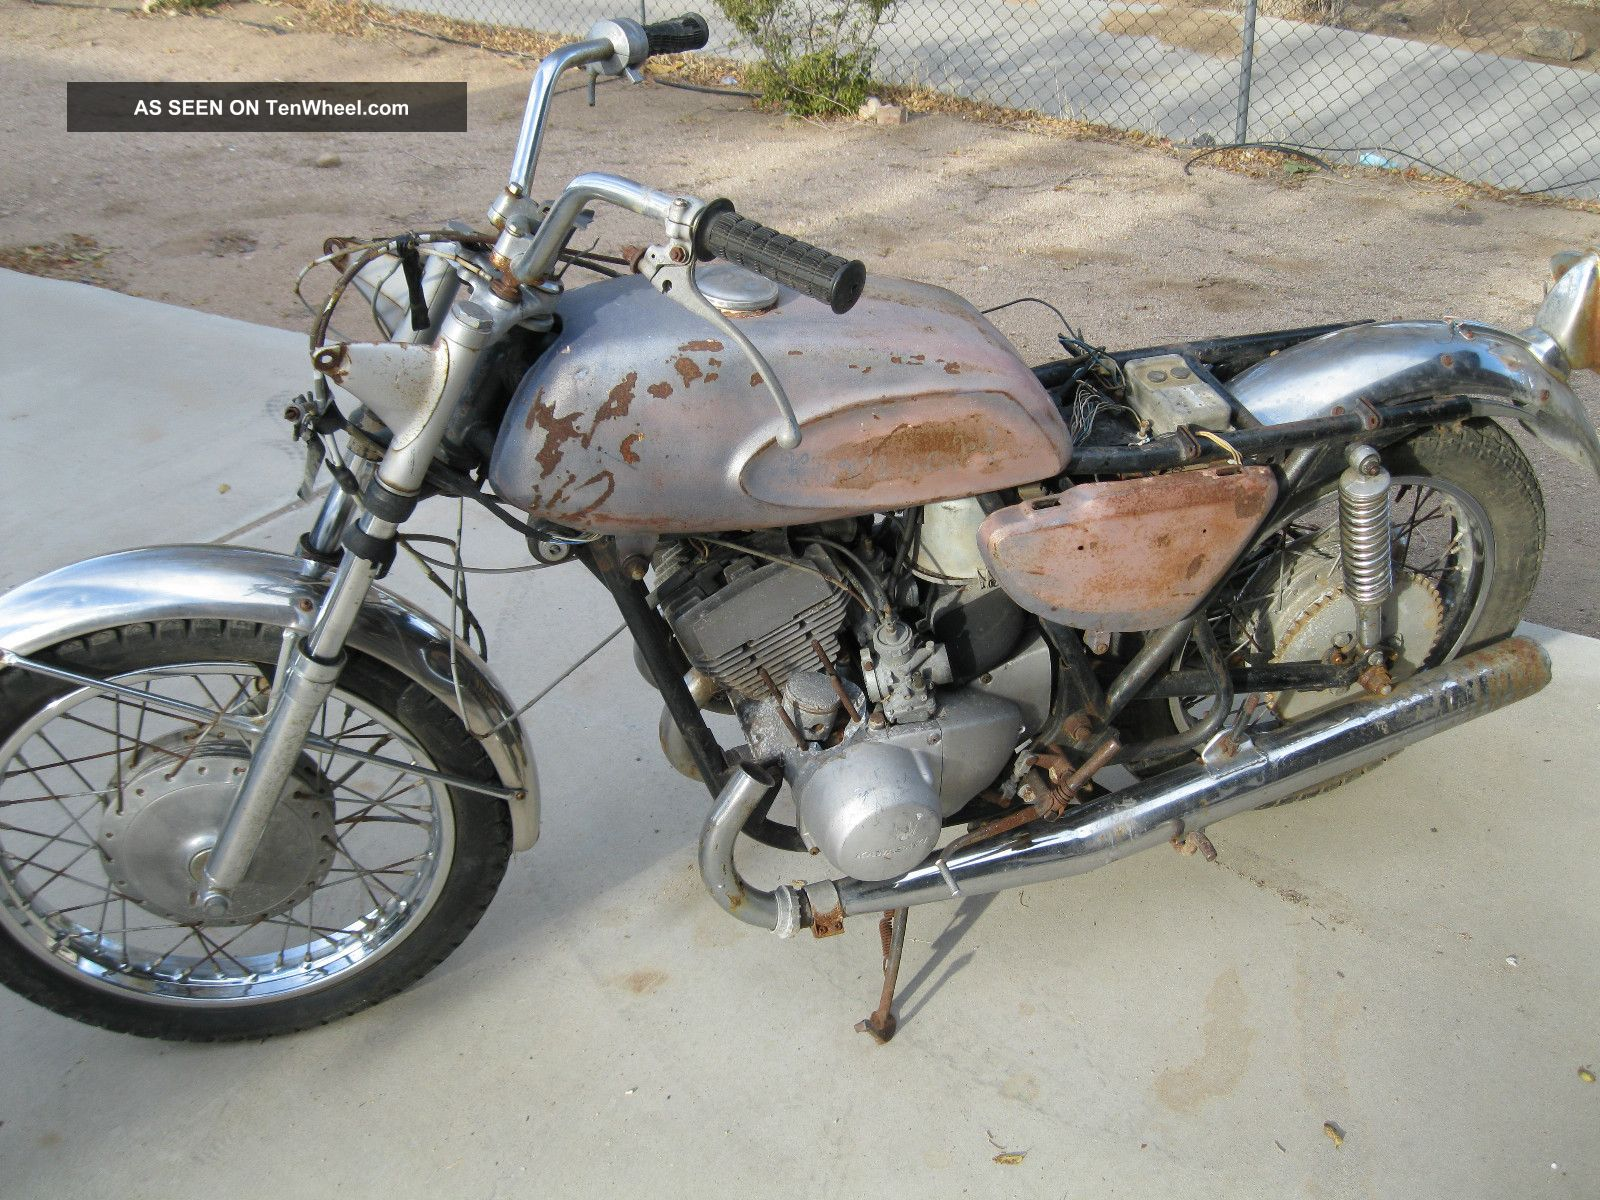 1969 Kawasaki H1 Mach Iii 500 Triple Blue Streak Vintage Project For Restoration Other photo